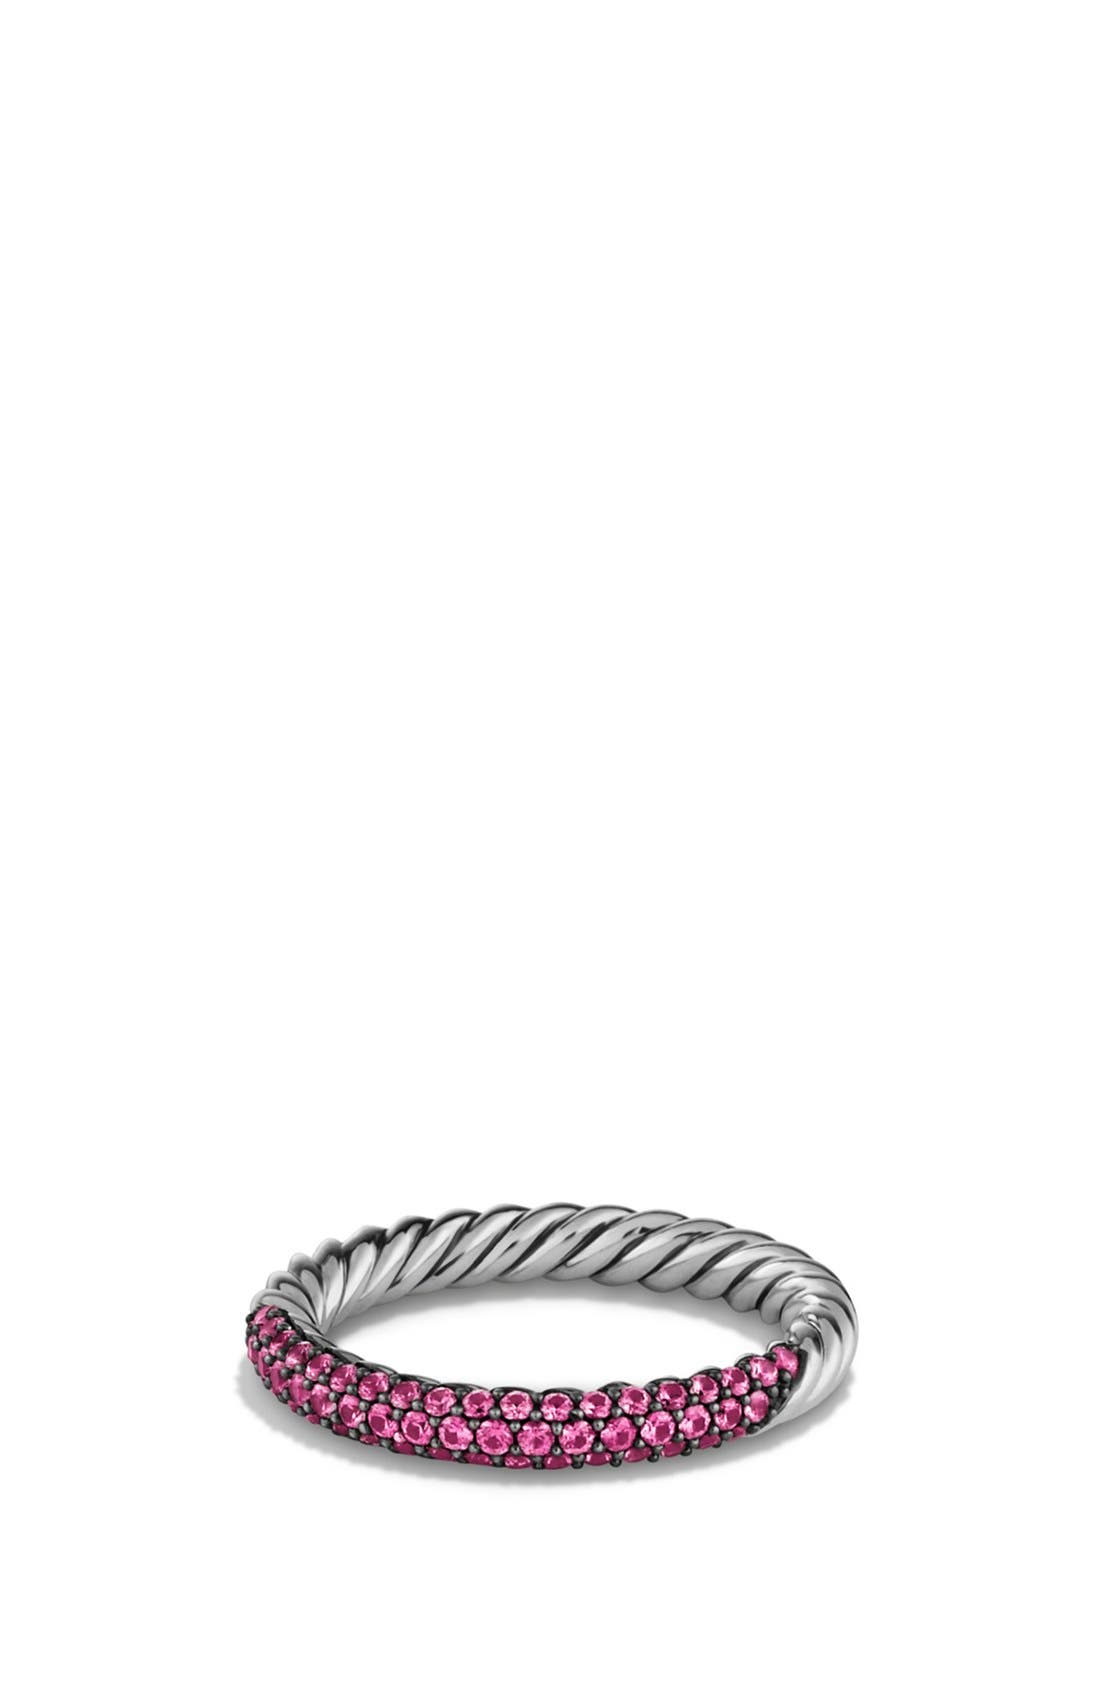 'Petite Pavé' Ring with Sapphires,                             Main thumbnail 1, color,                             Pink Saphire